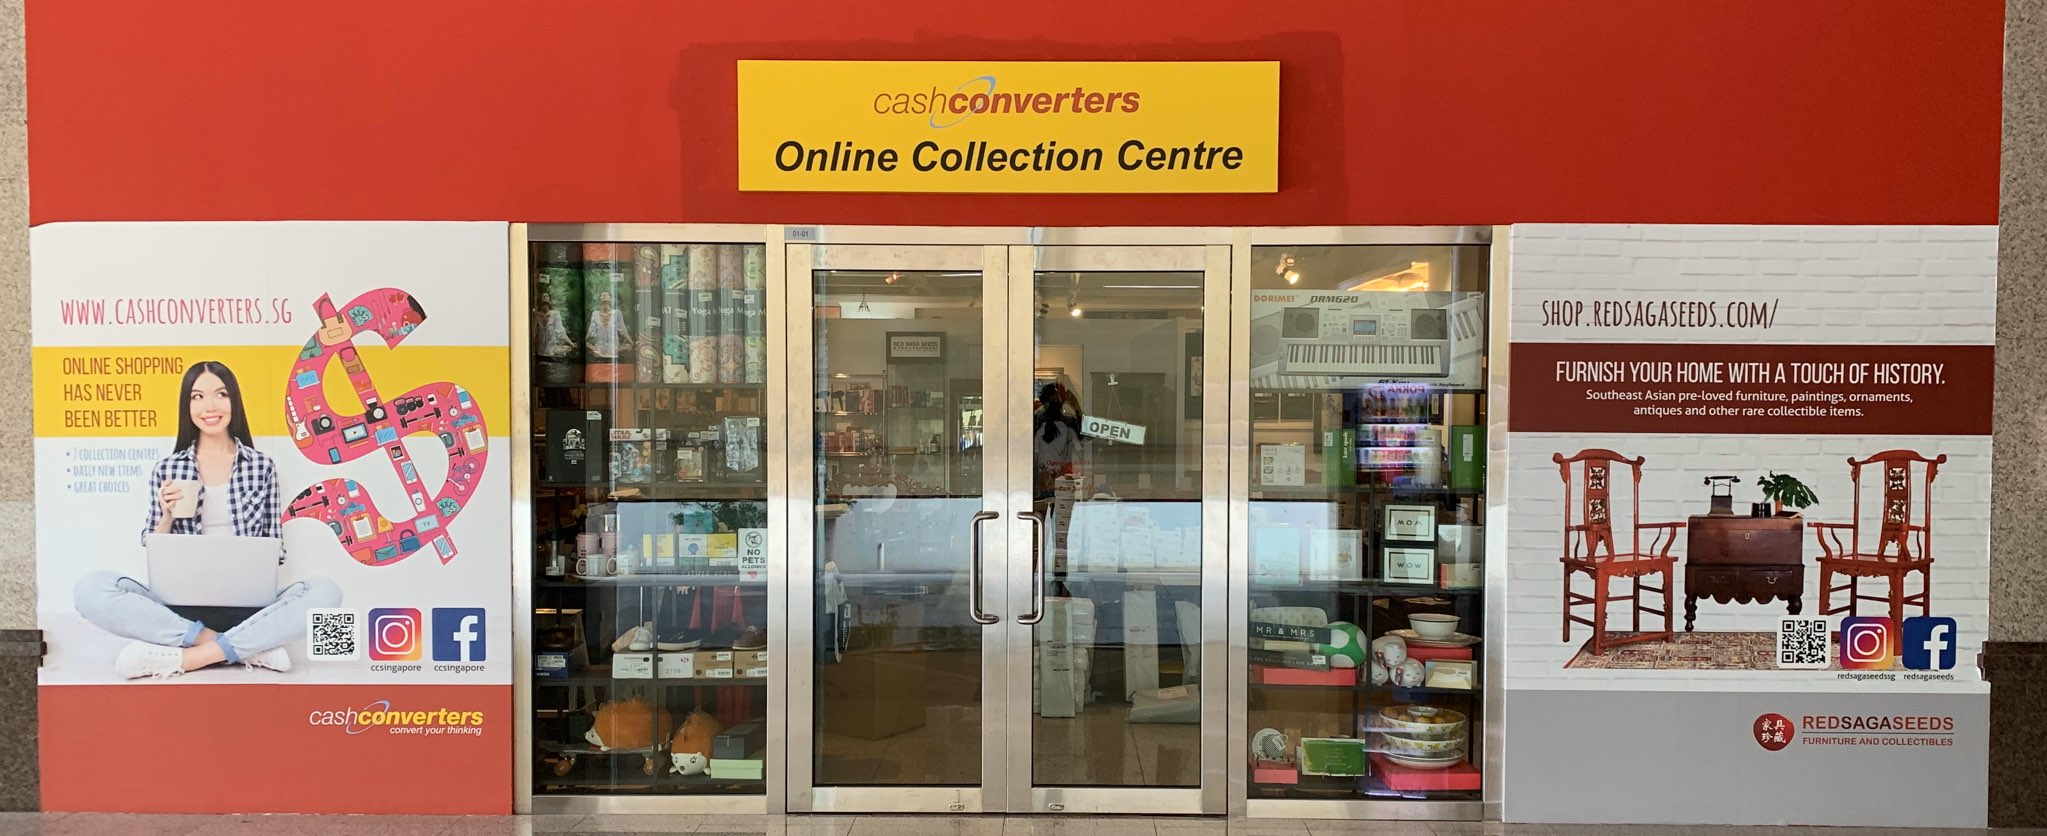 ECOMMERCE COLLECTION CENTRE